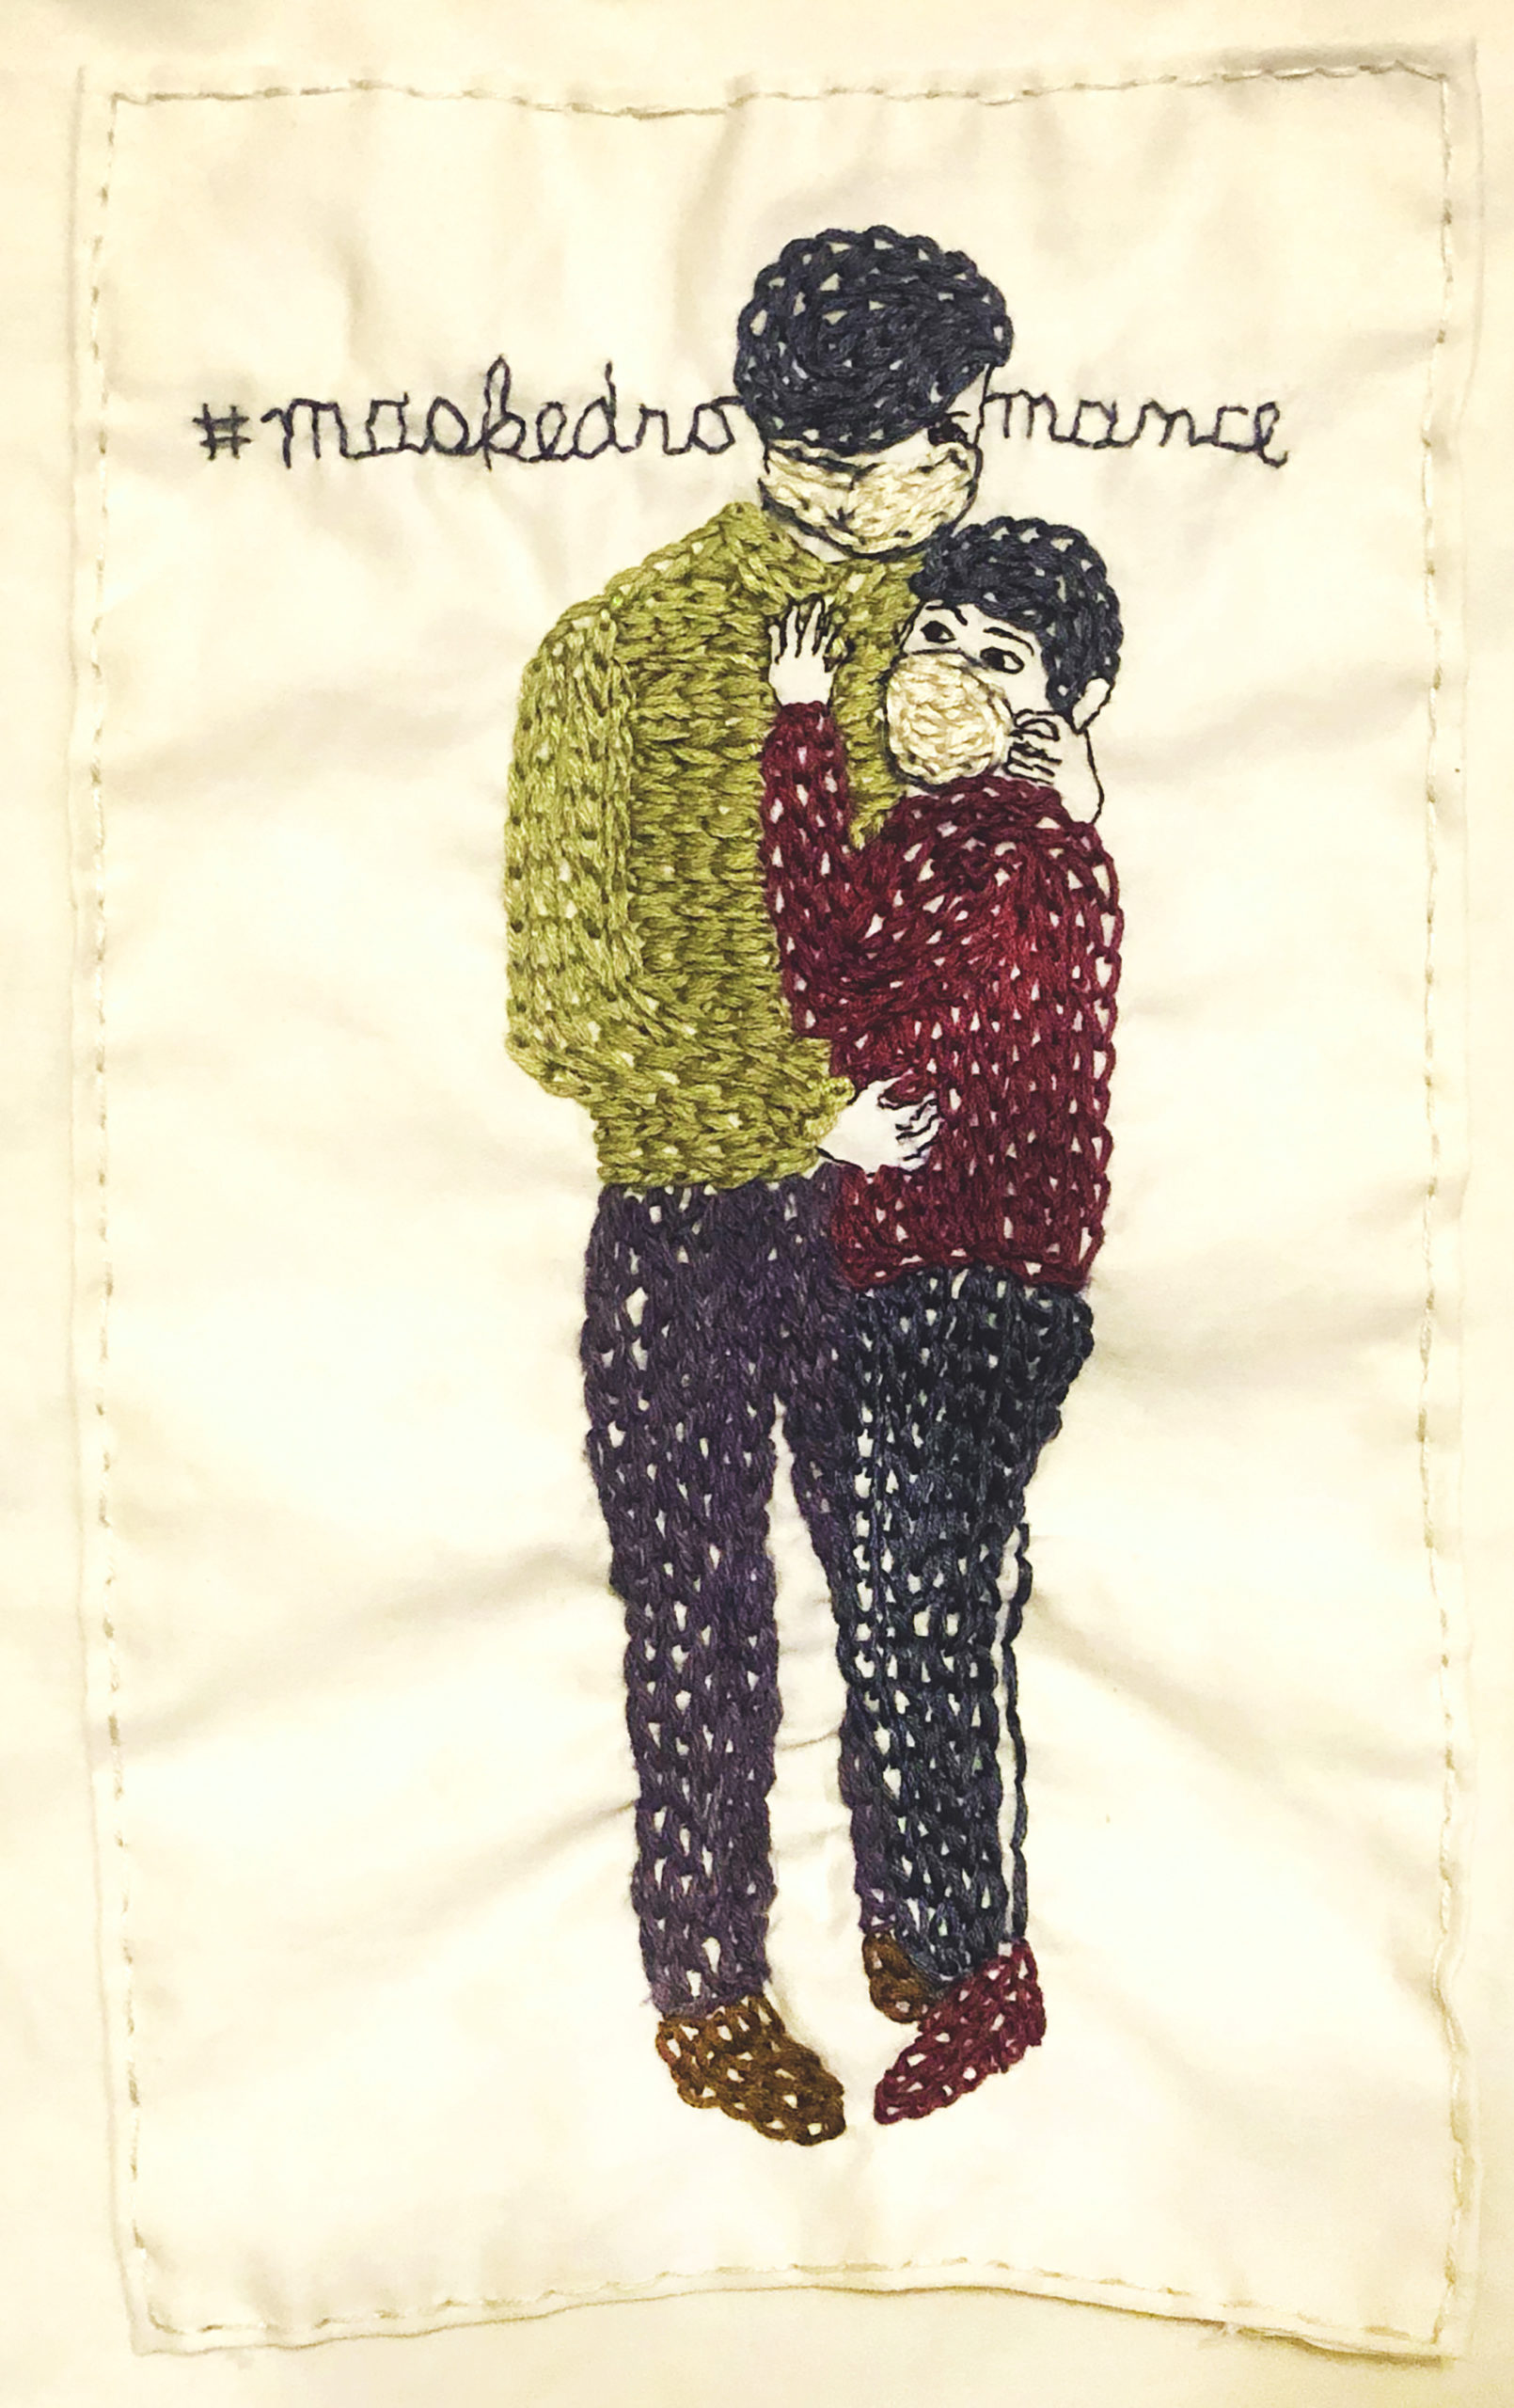 Embroidered work: Masked Romance by Iviva Olenick